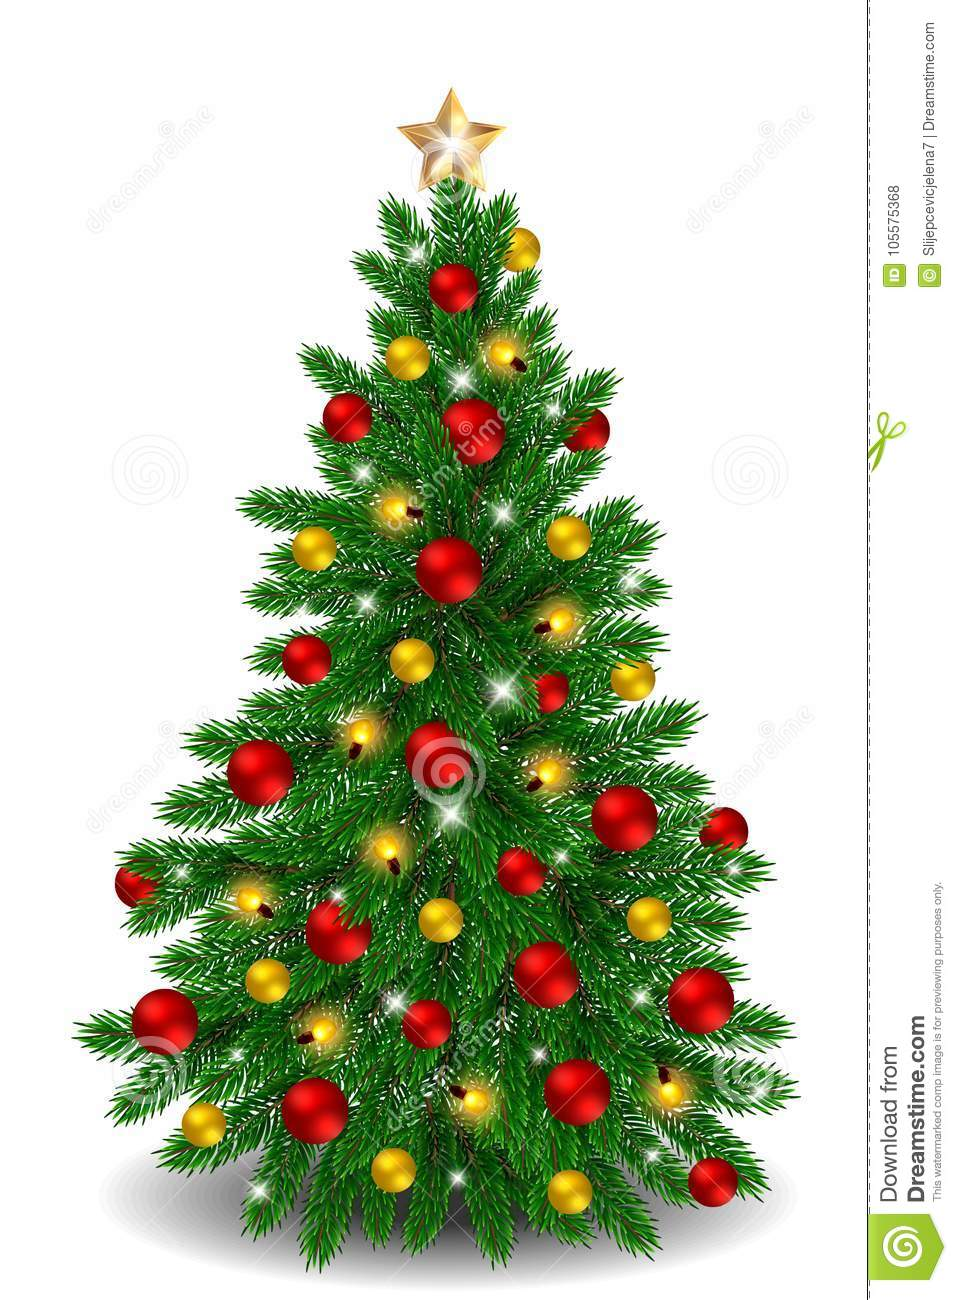 vector christmas tree with red and gold ornaments - Christmas Tree Red And Gold